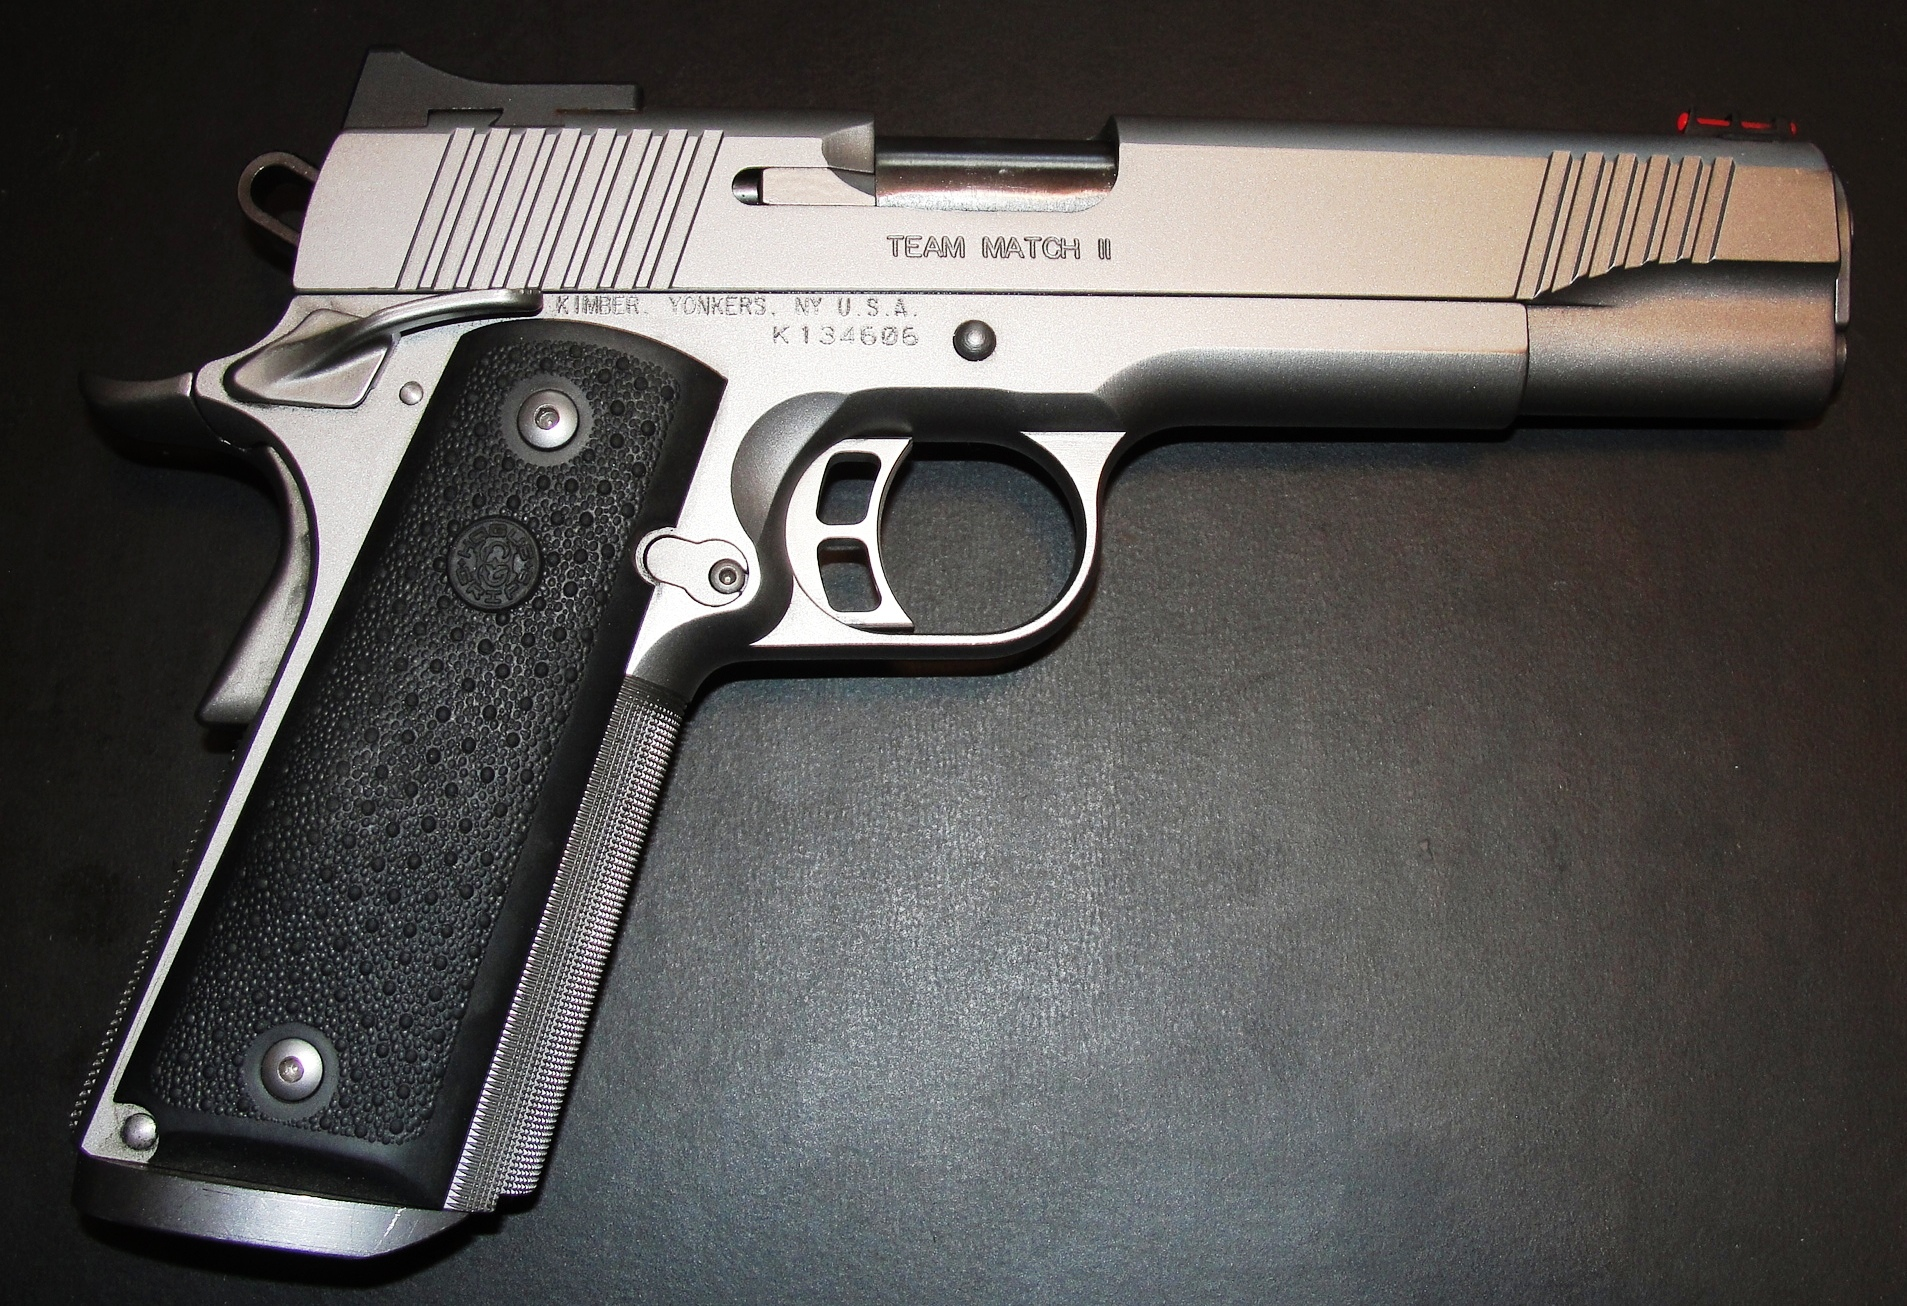 Pistol Pics | 2nd Amendment, Shooting & Firearms Blog